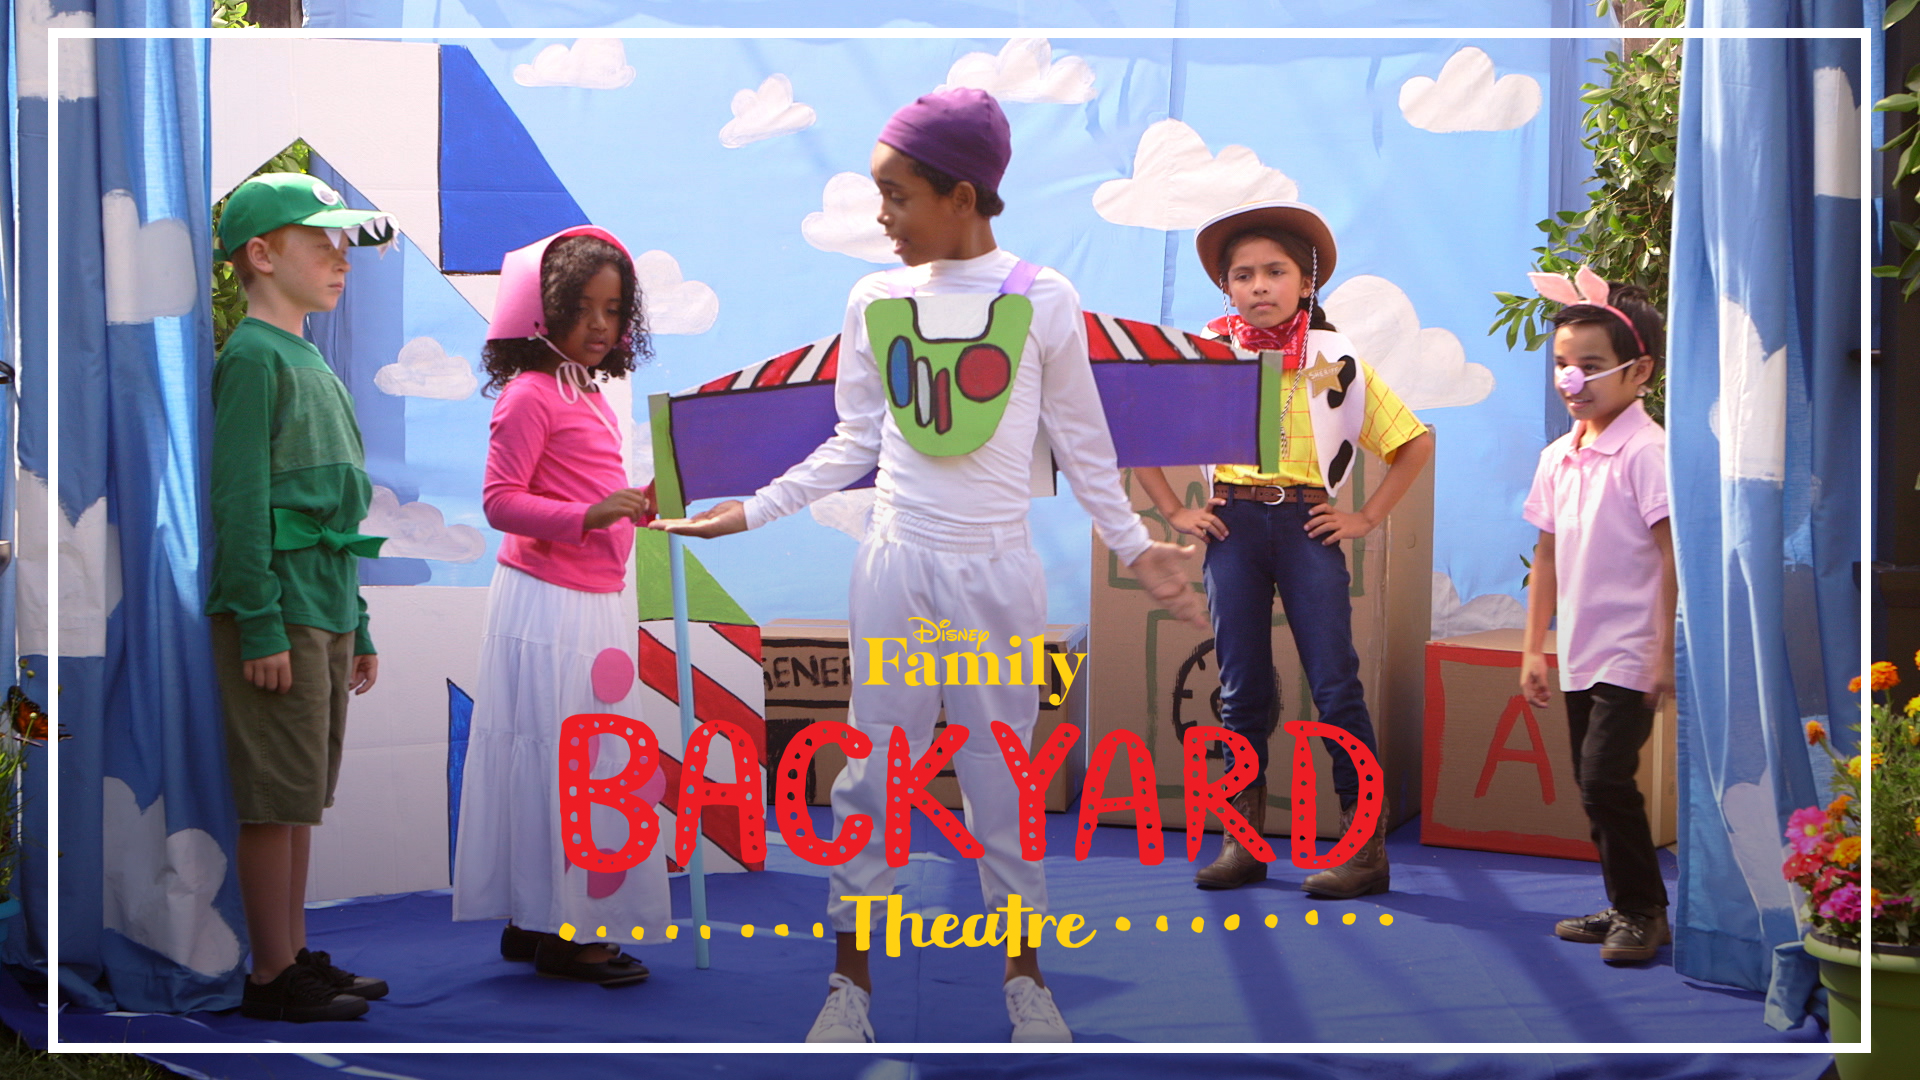 Backyard Theatre: Toy Story Performance | Disney Family